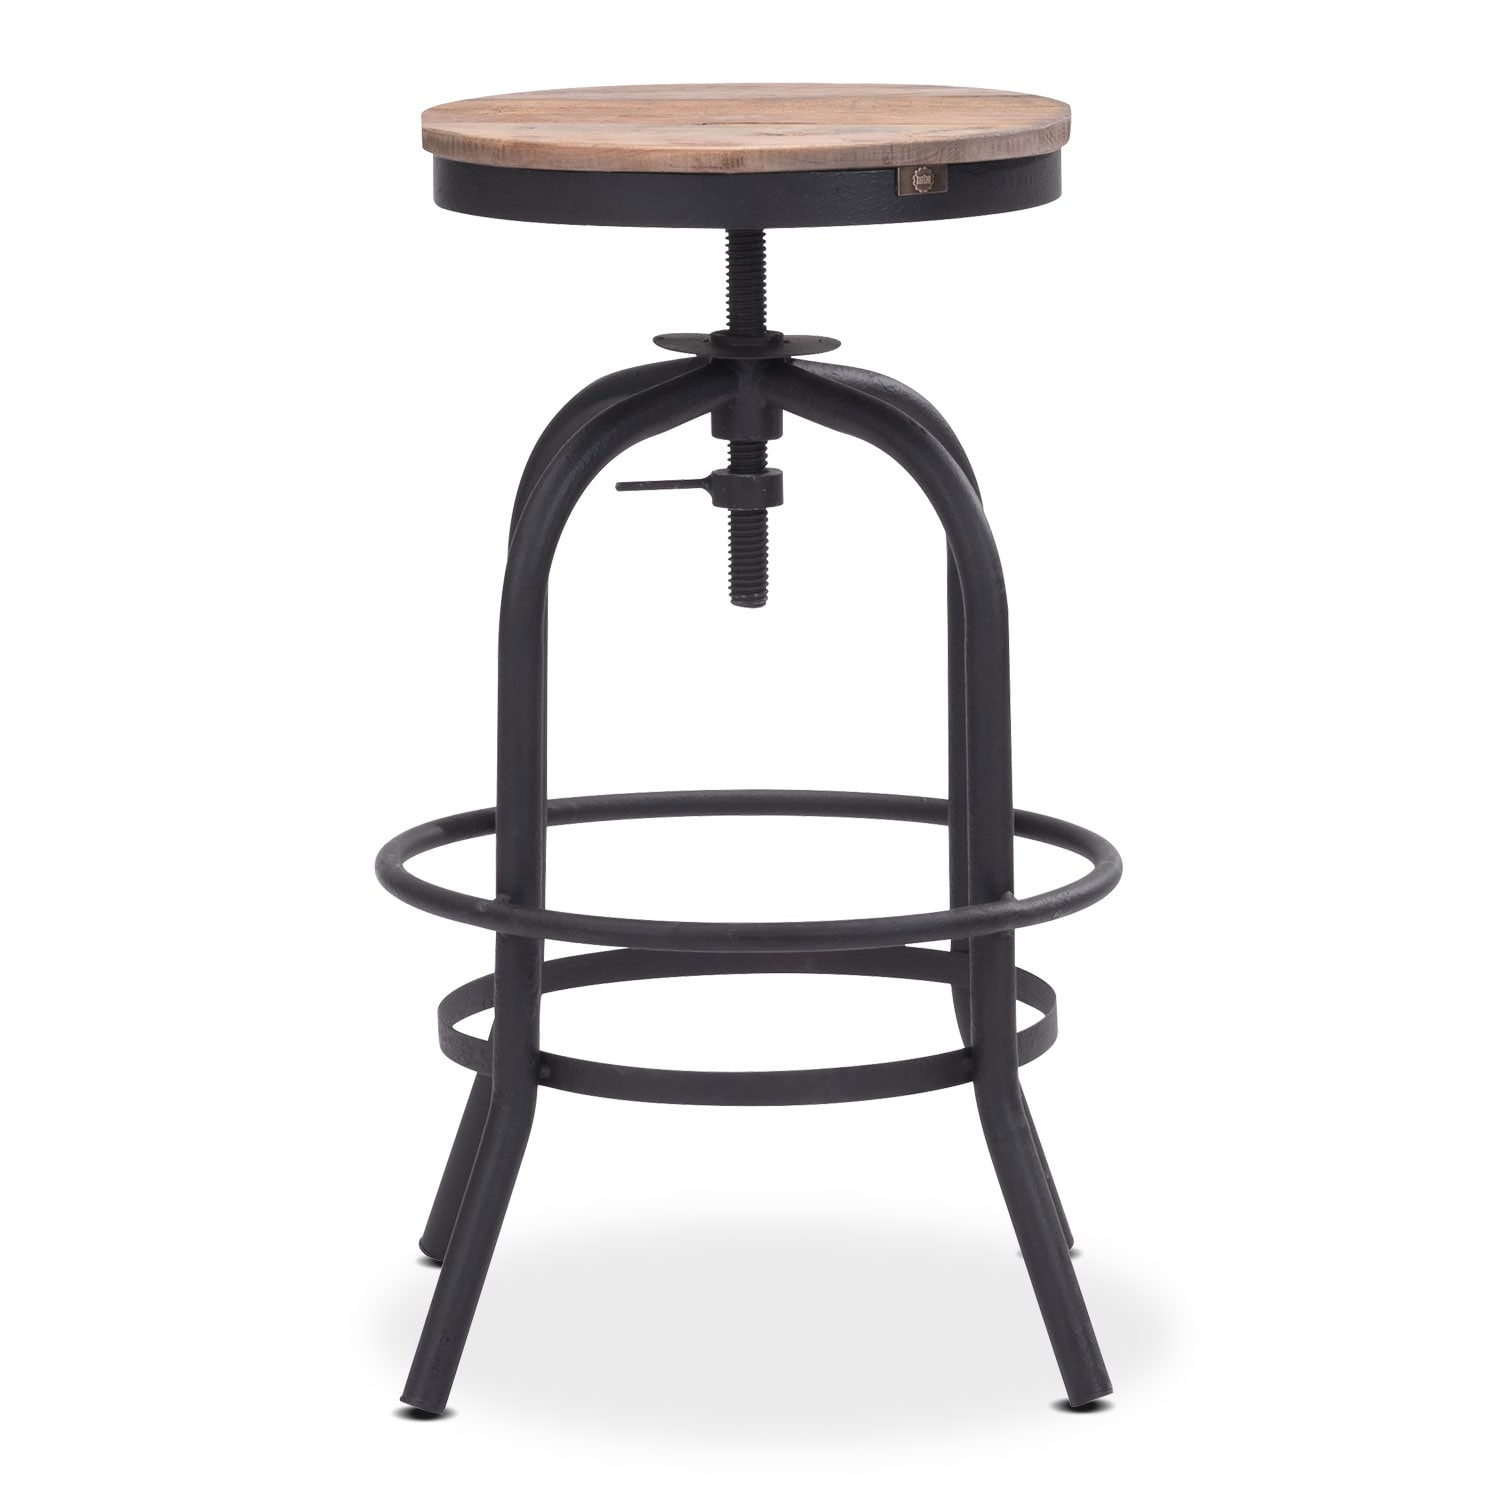 Elston adjustable backless counter height stool american for Counter height bar stools